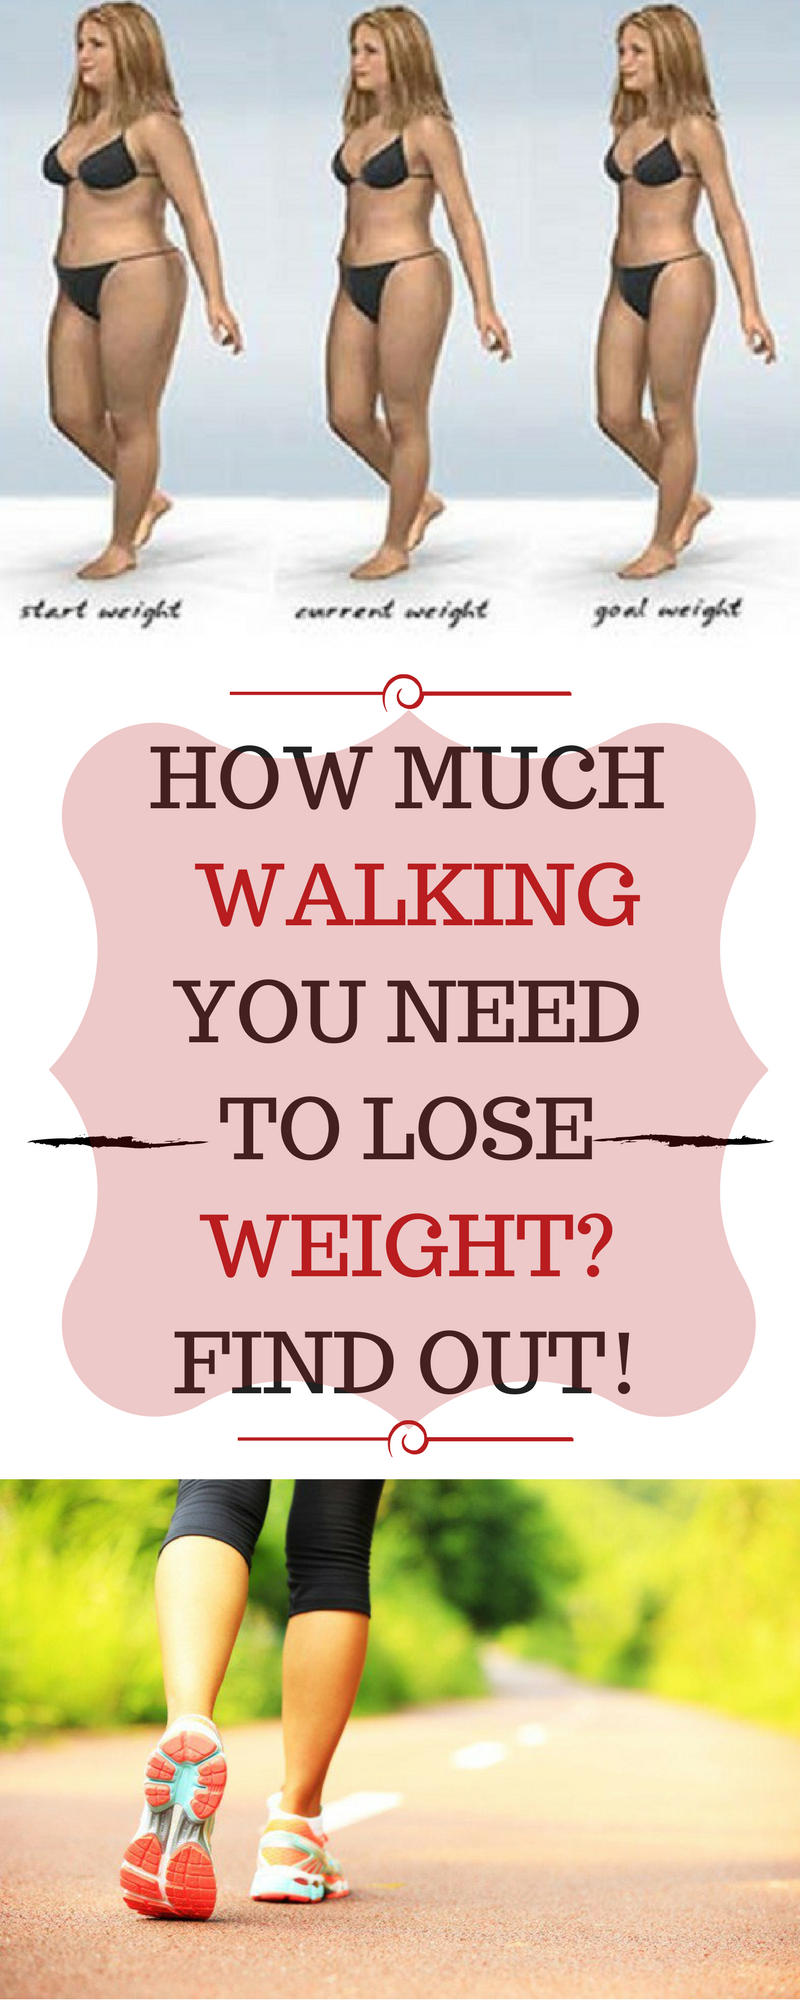 5 miles/day to lose 1 lb per week.   exercise   pinterest   fitness